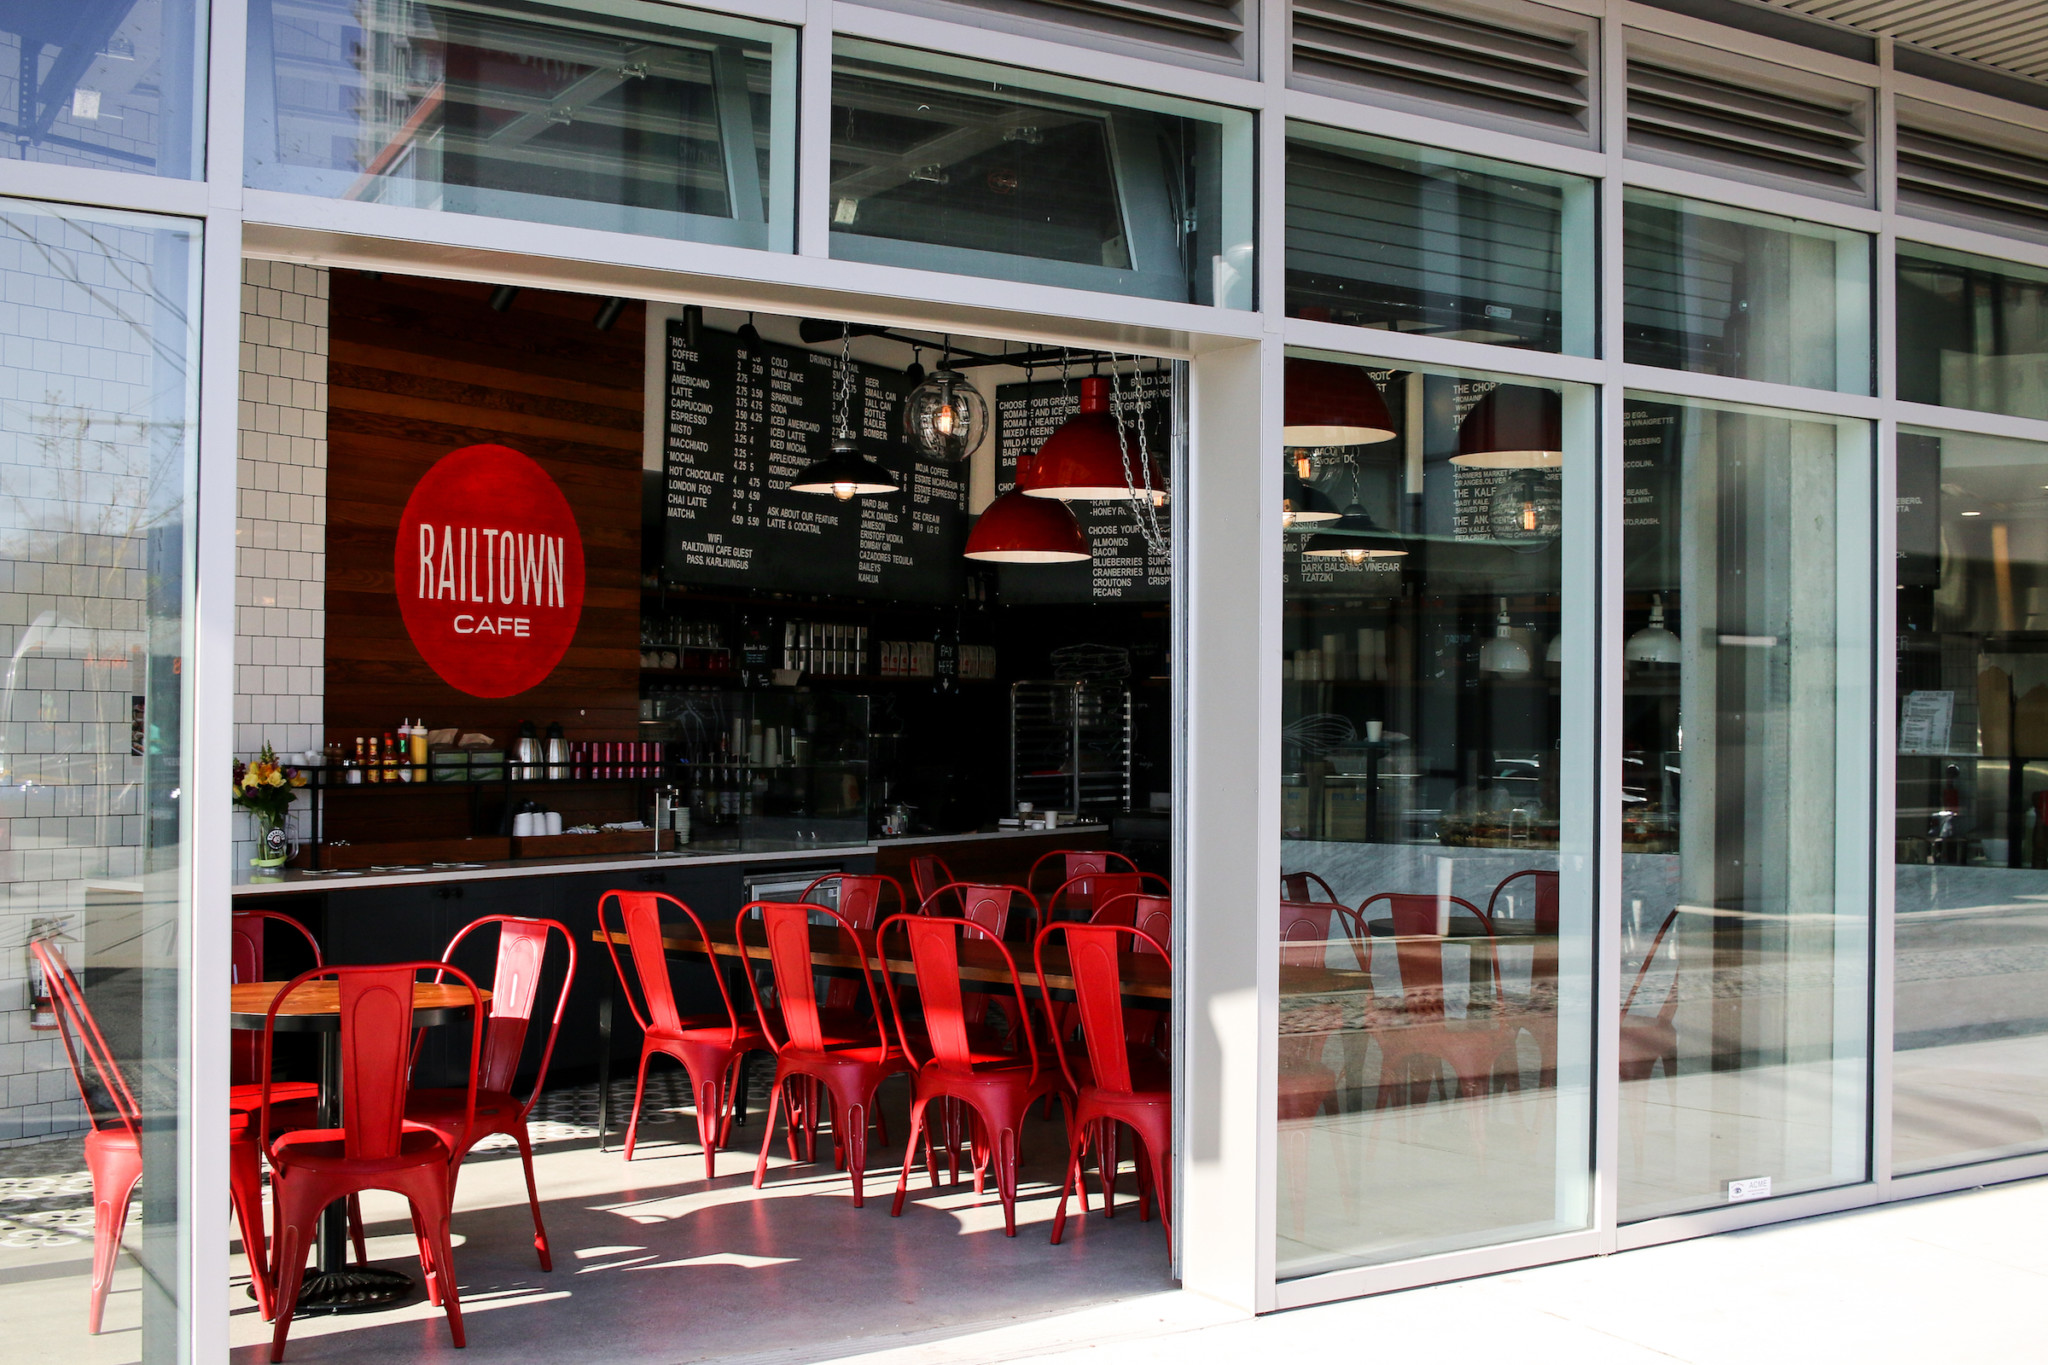 AND MAIN MAKES THREE: NEWEST RAILTOWN CAFE TO OPEN AT1691MAIN ST.ONAPRIL 17